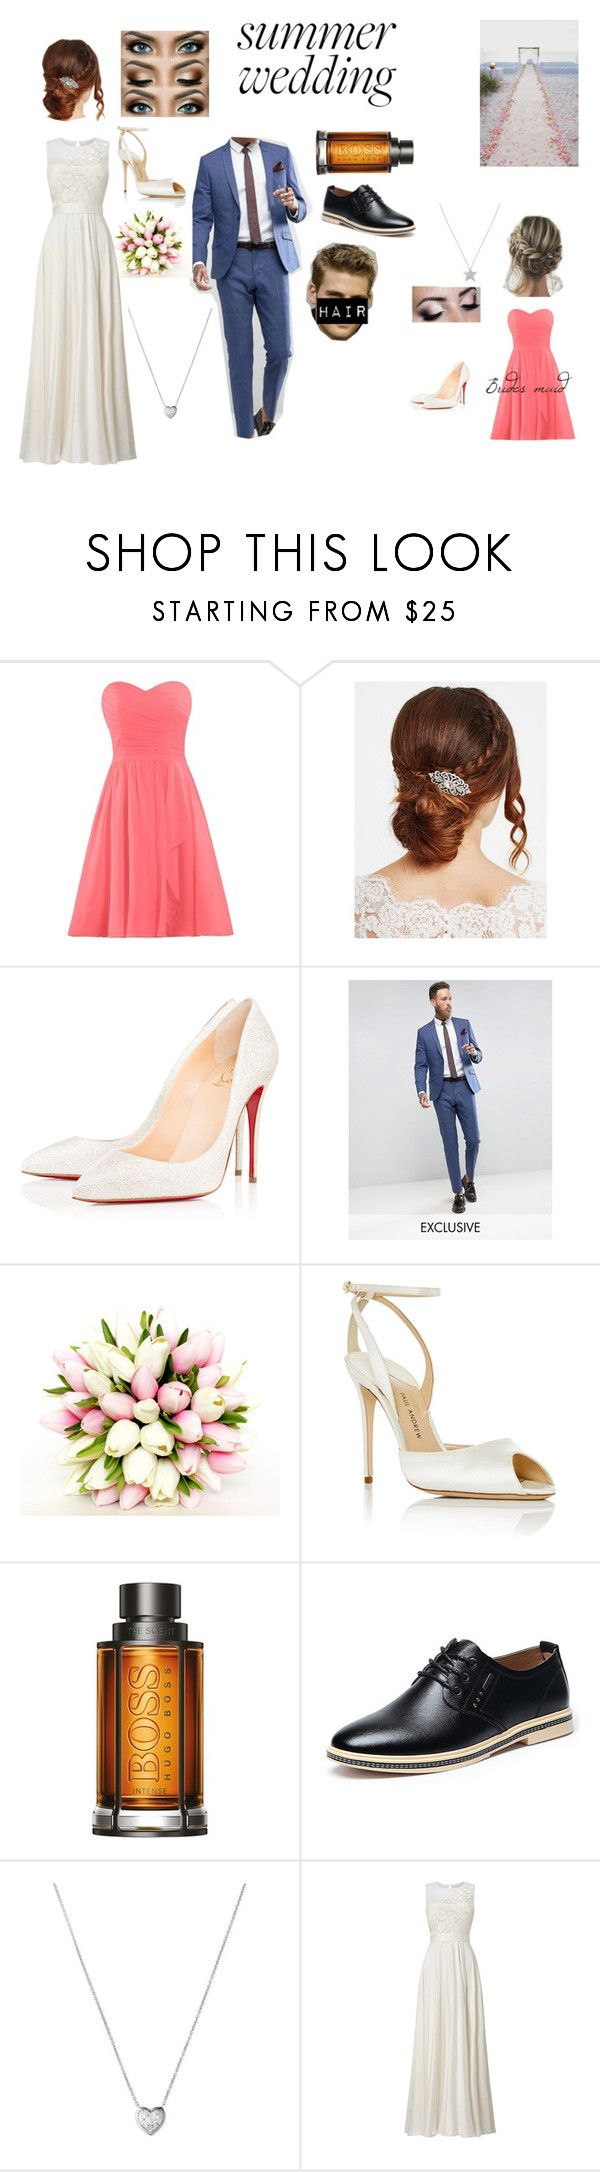 """""""Summer Wedding"""" by hailey-102706 ❤ liked on Polyvore featuring Jon Richard, Arbonne, Christian Louboutin, Jim Hjelm, Paul Andrew, BOSS Hugo Boss, Links of London and Phase Eight"""